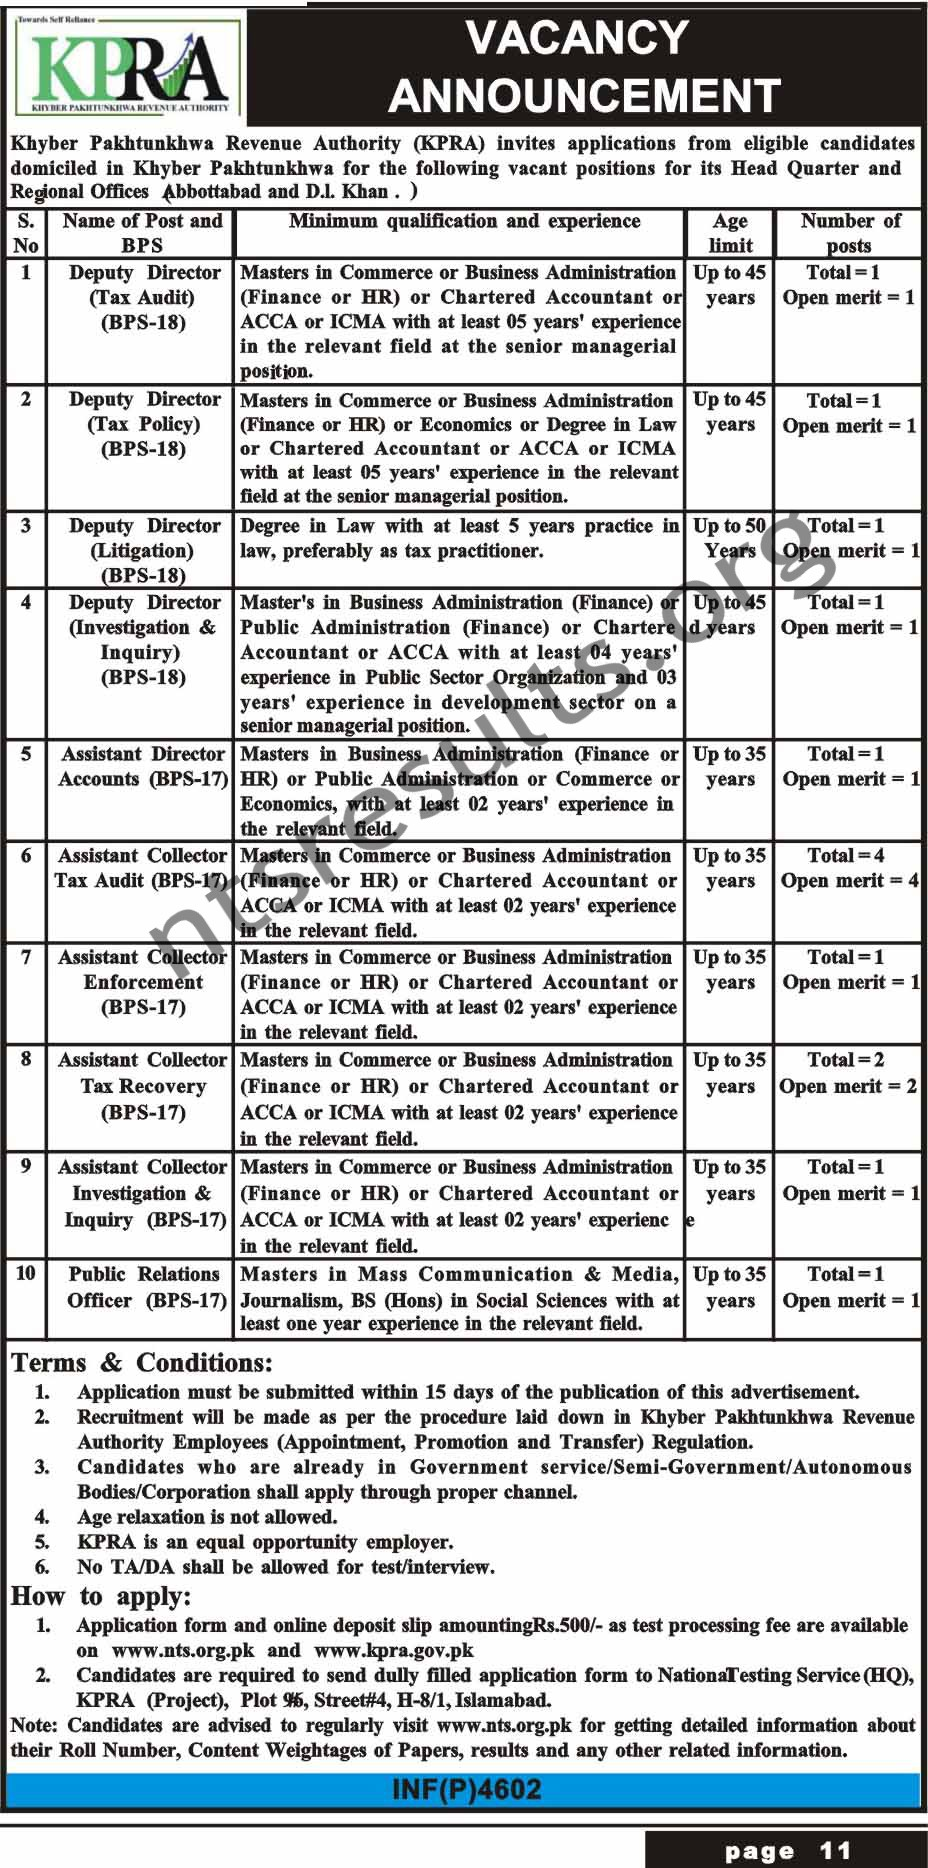 Khyber Pakhtunkhwa Revenue Authority KPRA BPS 17 BPS 18 Jobs Via NTS